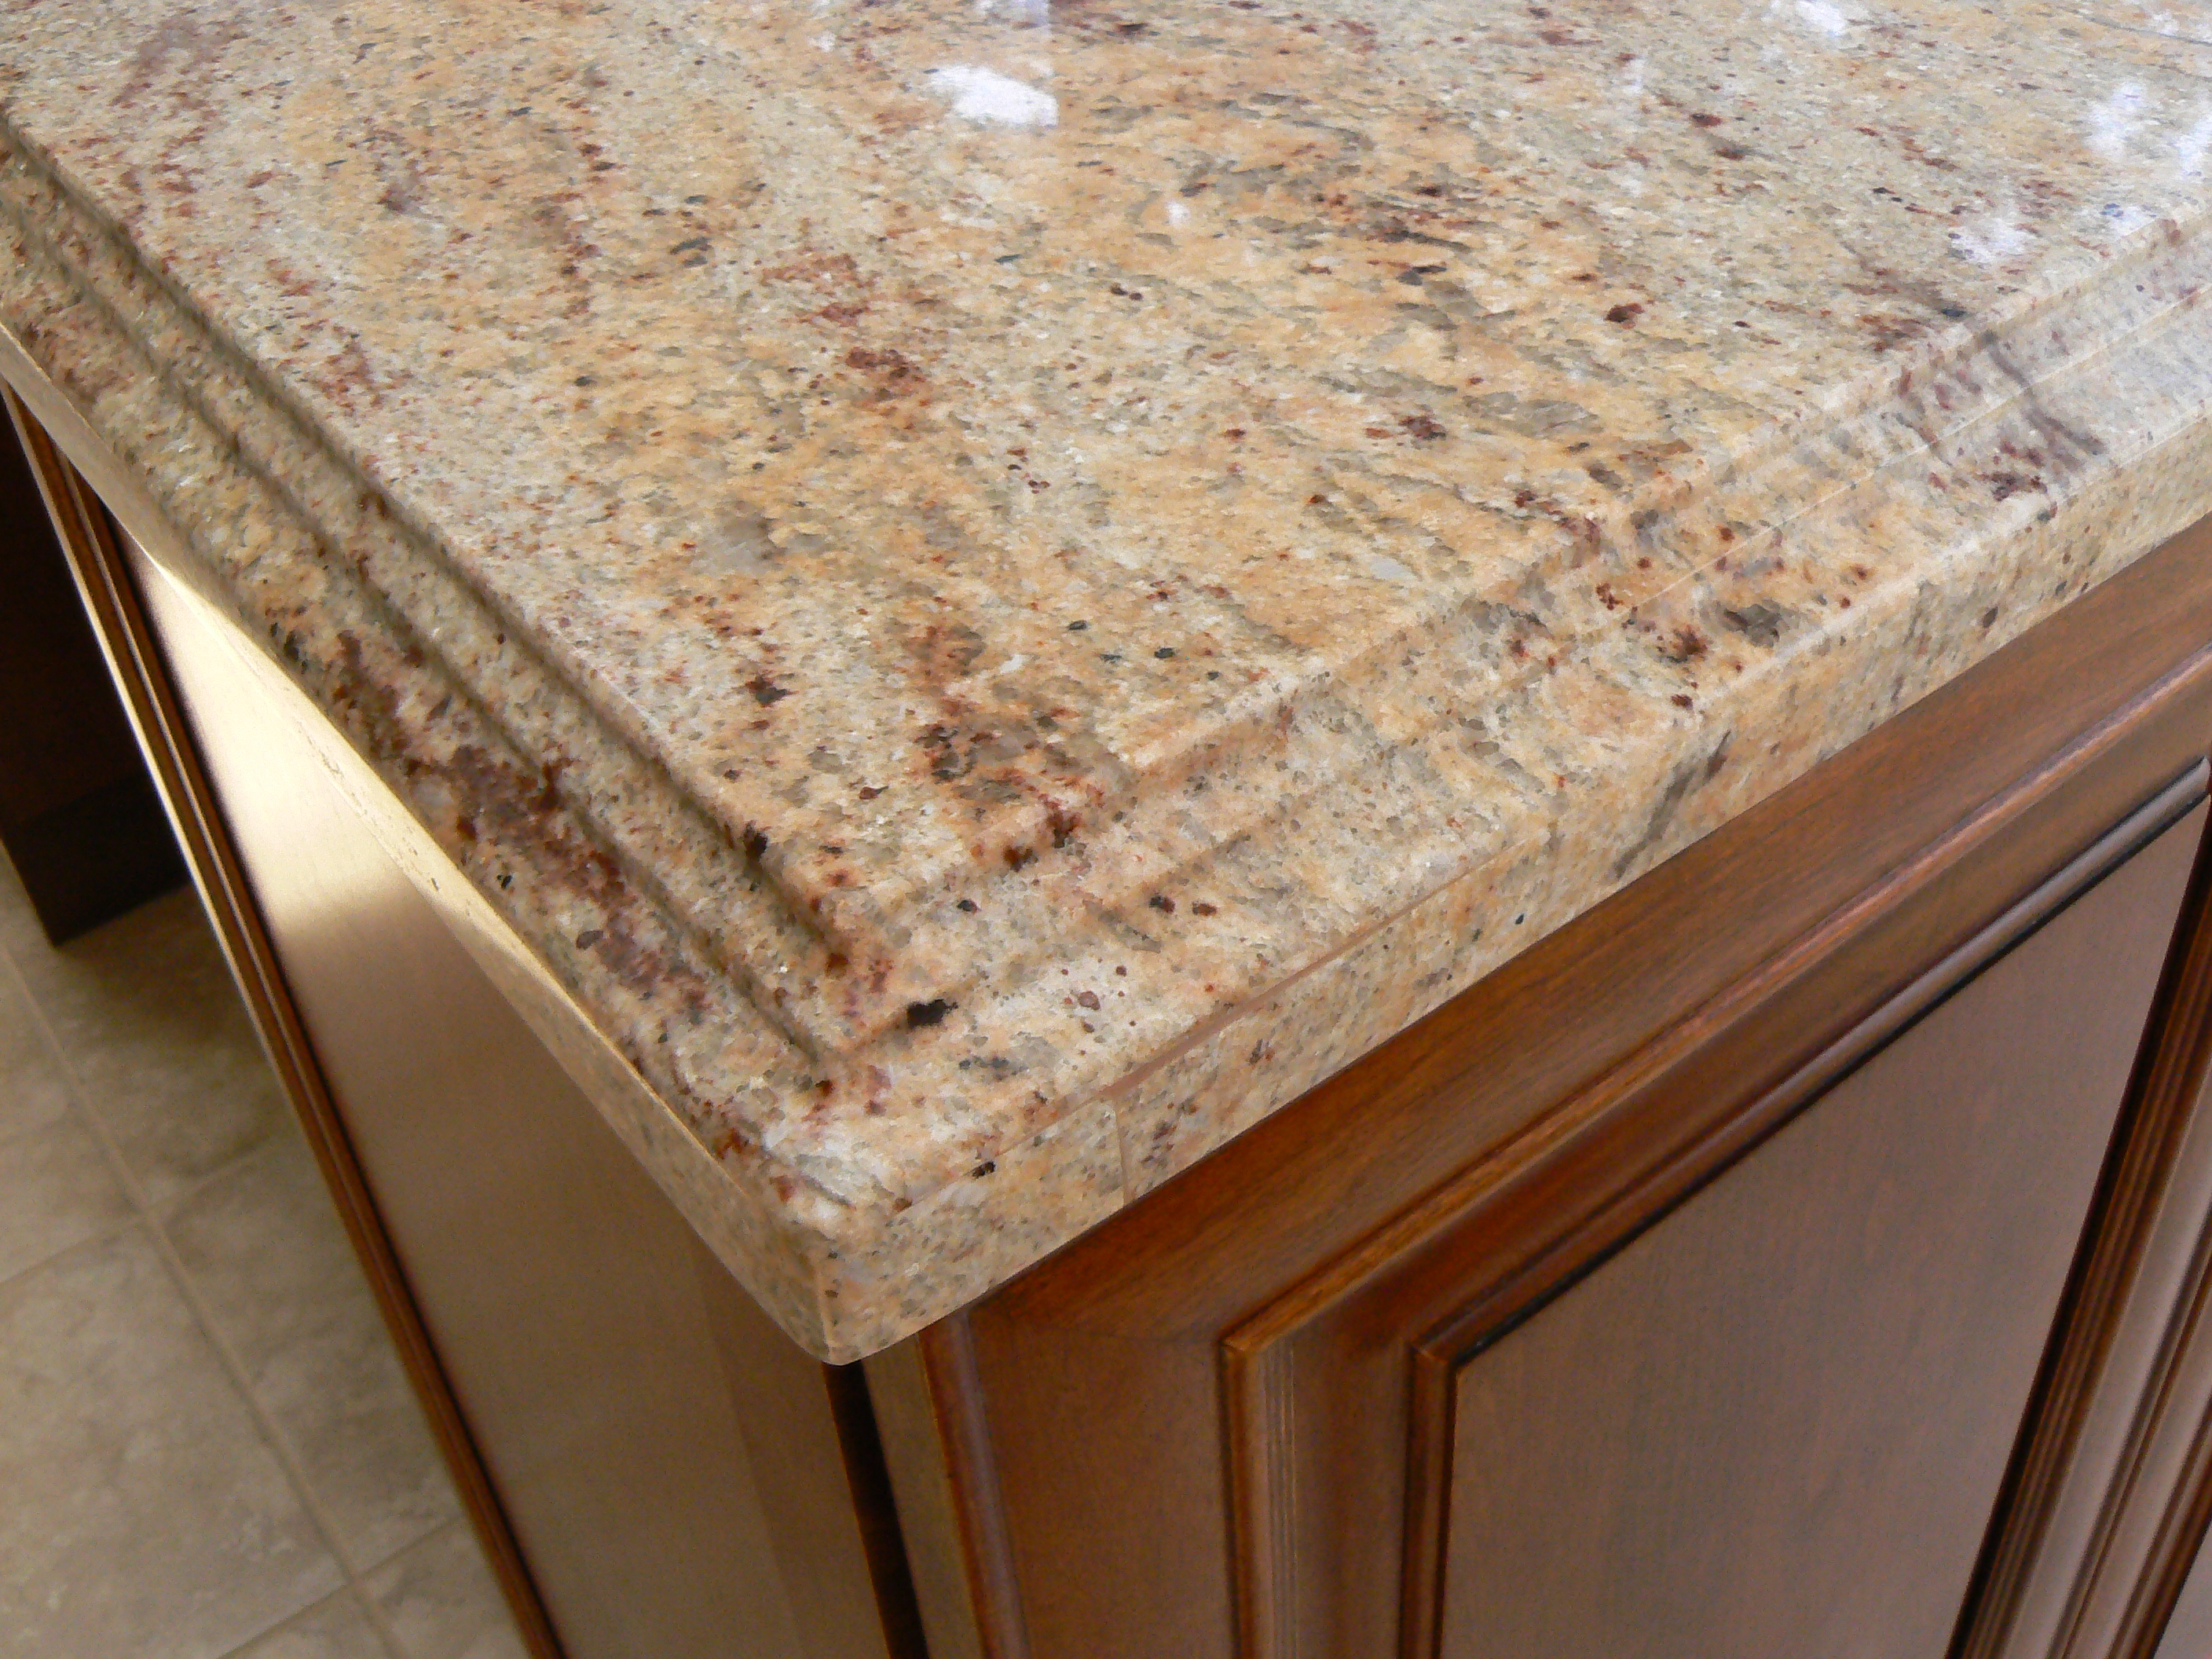 Countertop Fabricators : countertops/Countertop-A.JPG